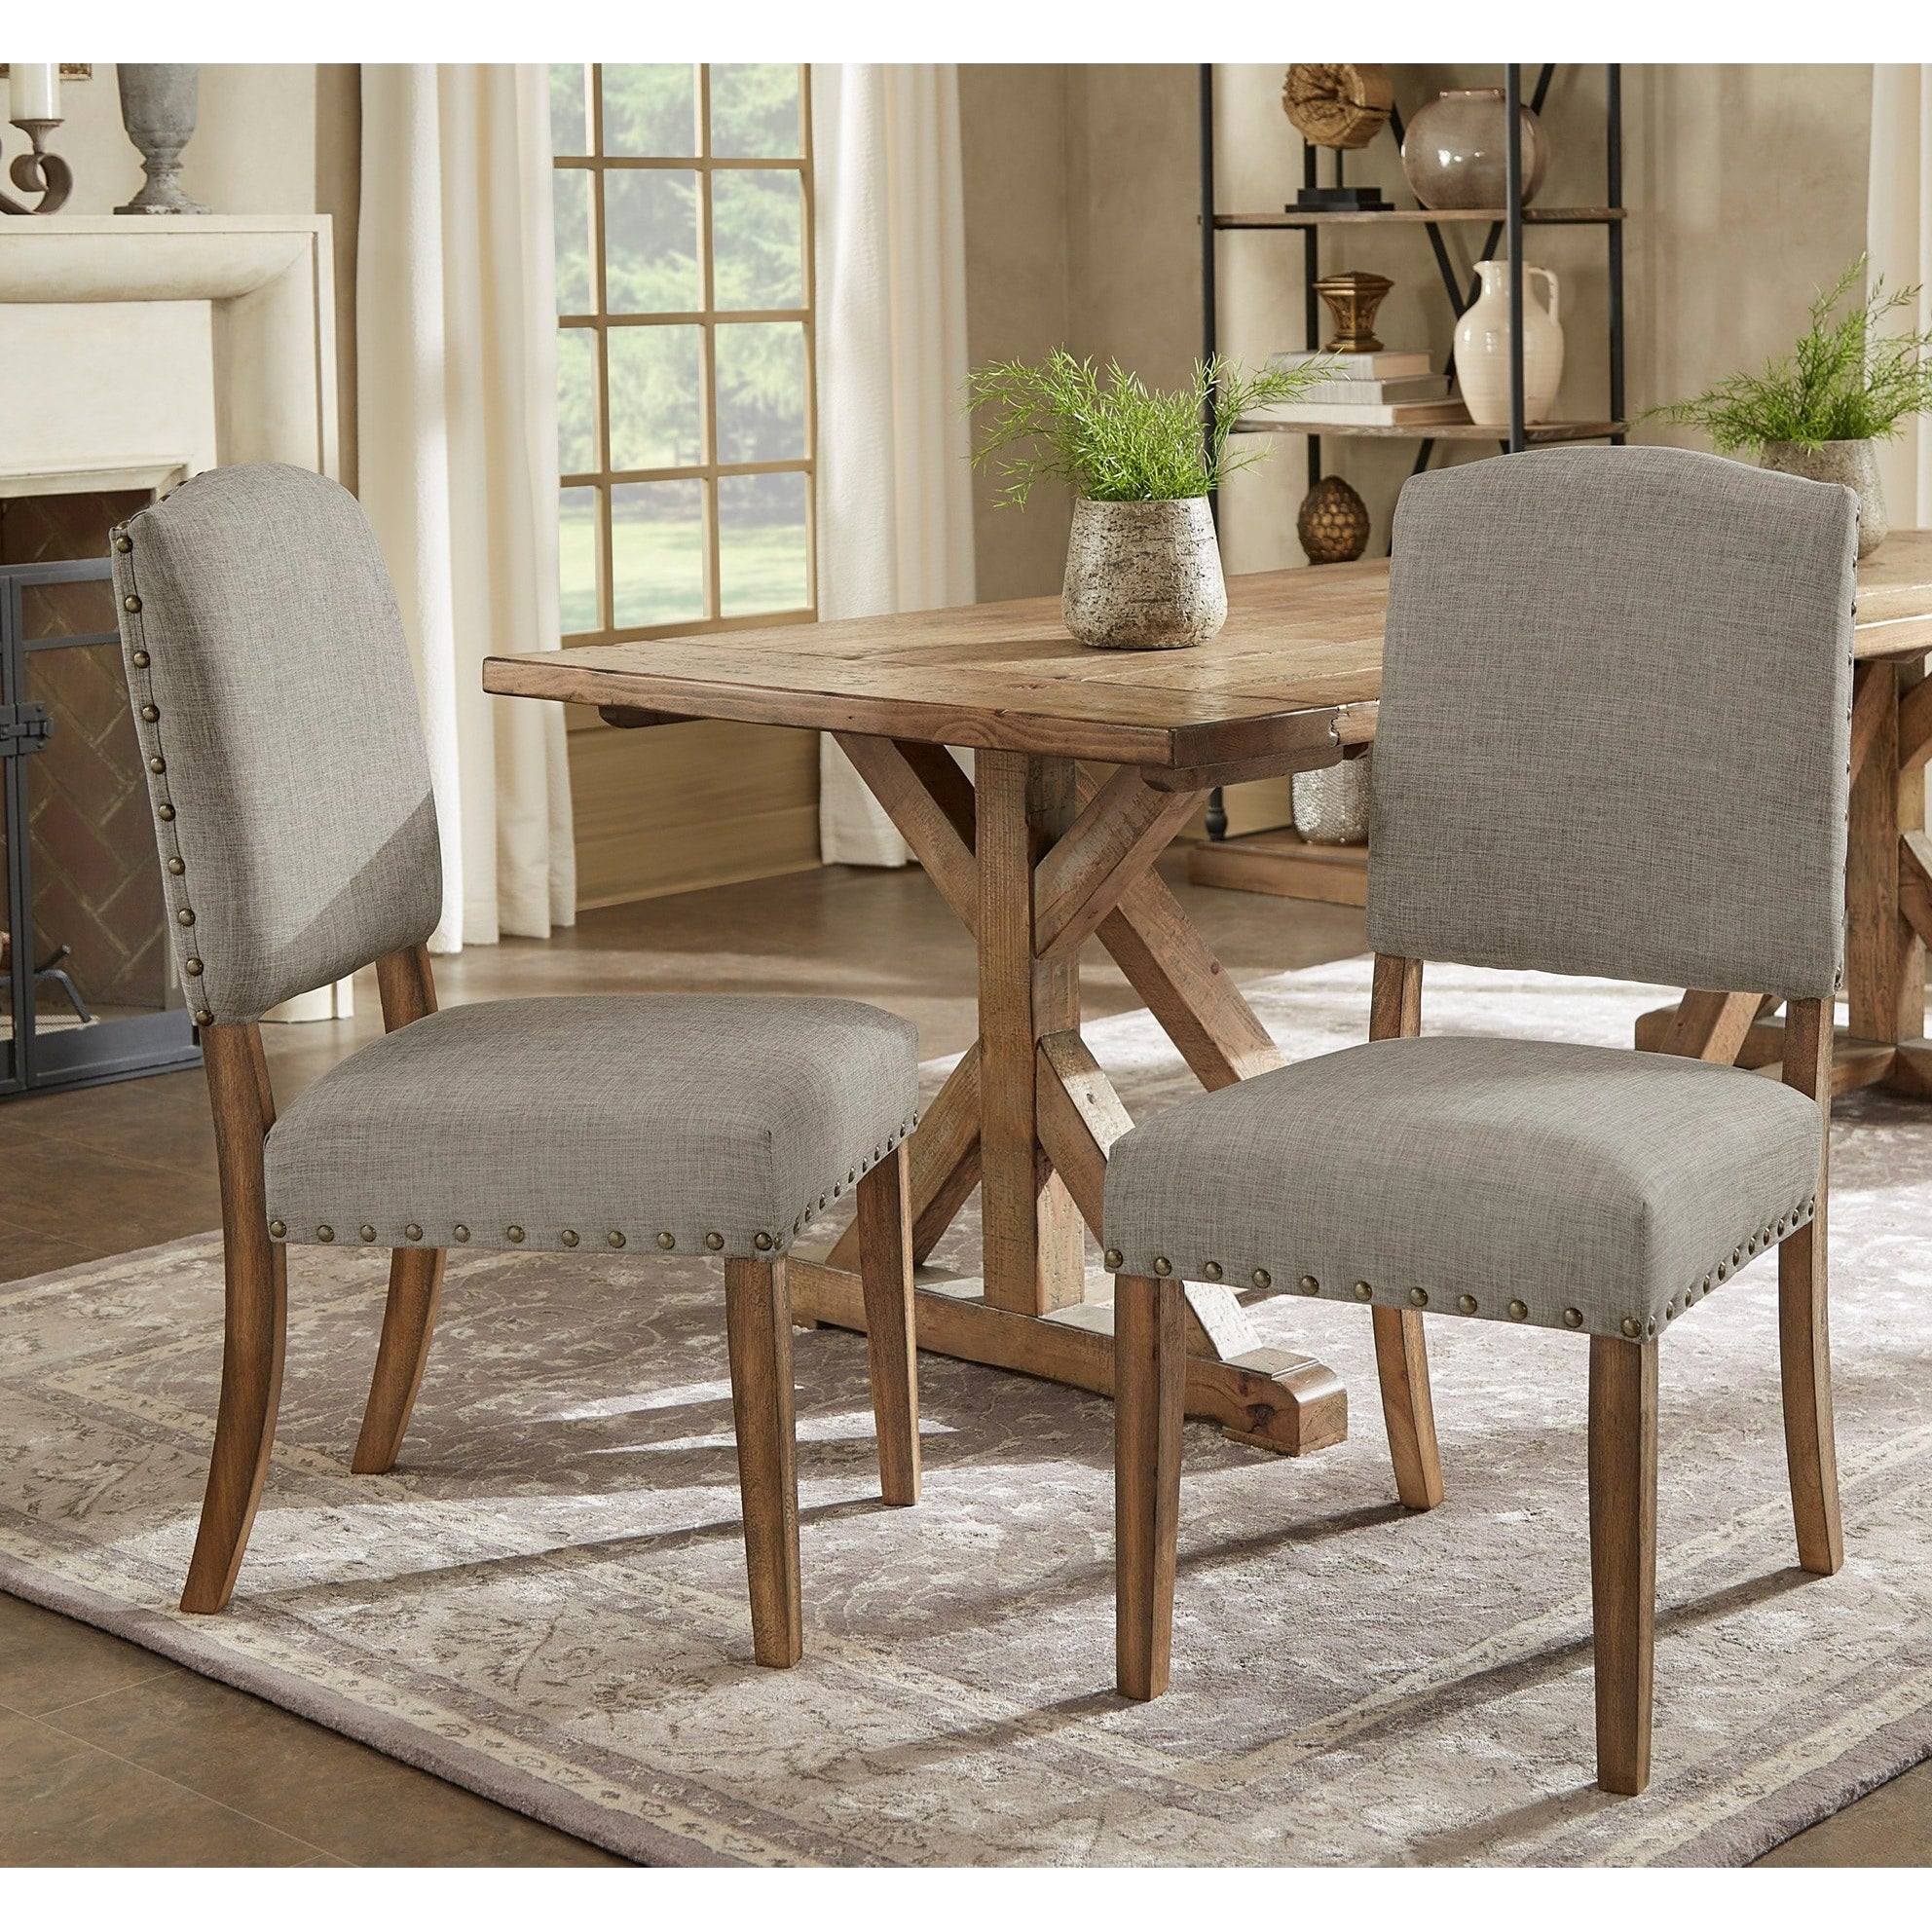 Premium Nailhead Upholstered Dining Chairs